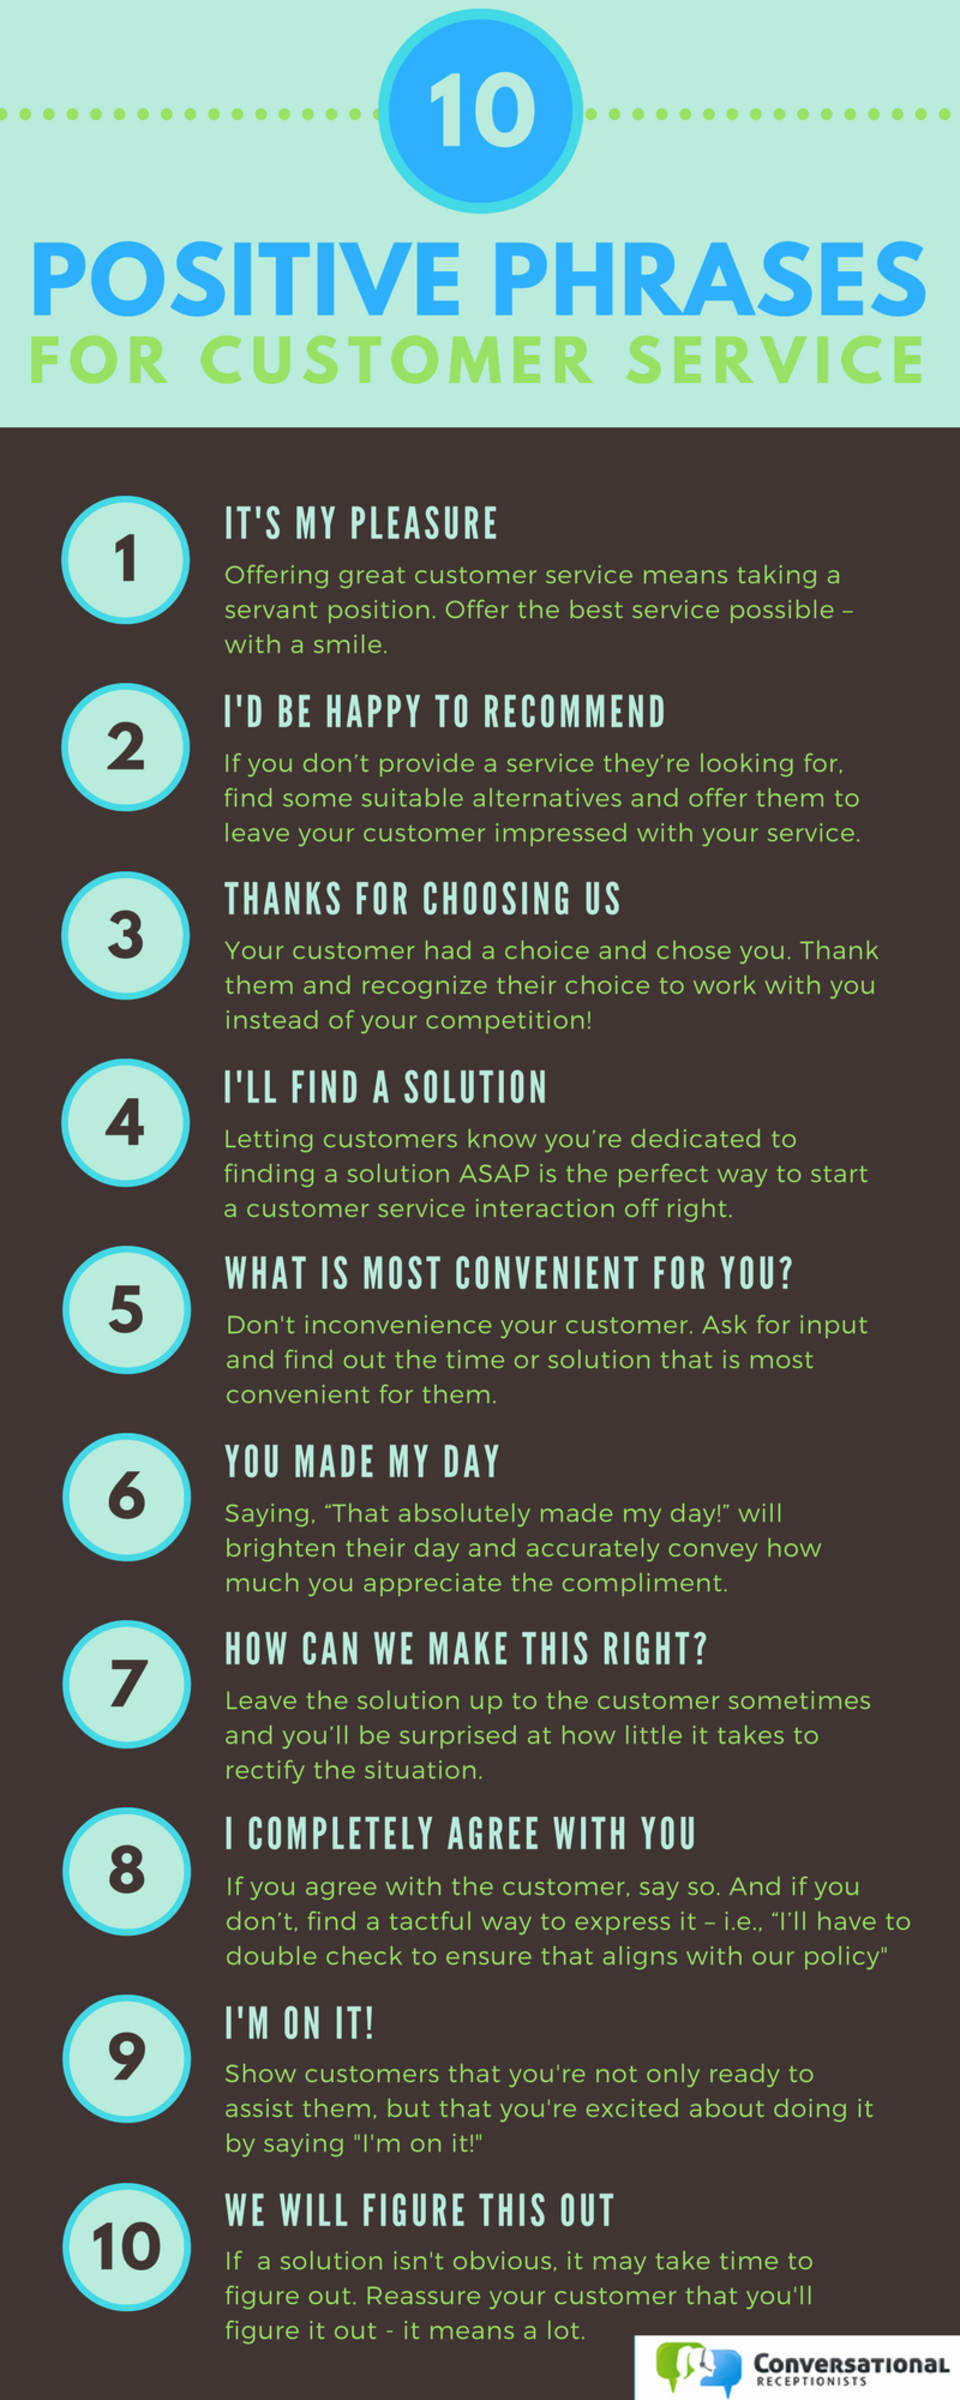 10positivephrasesinfographic